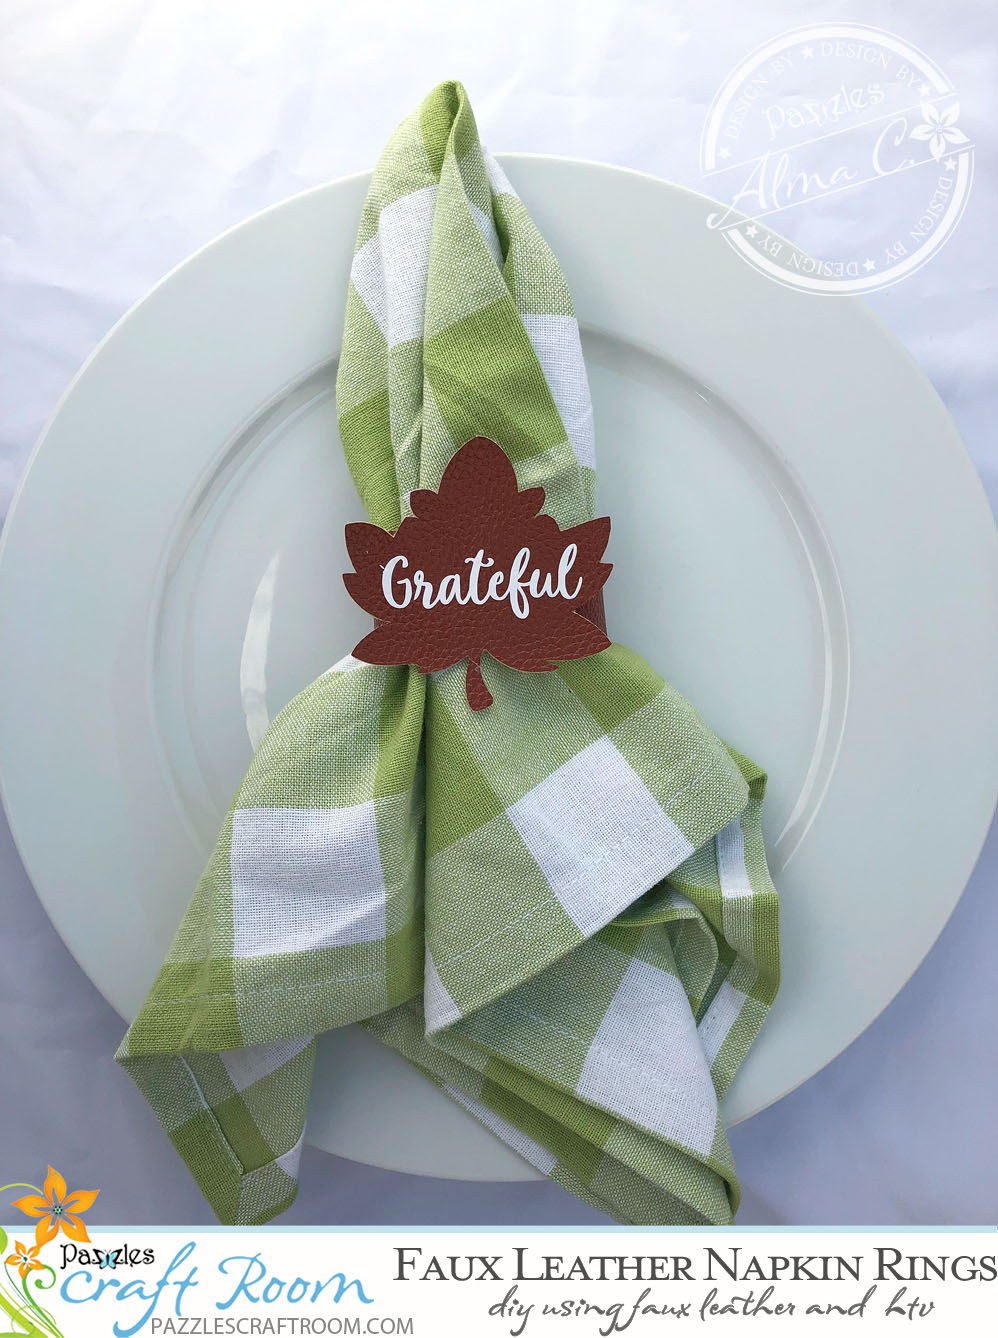 Pazzles DIY Faux Leather Napkin Rings with SVG download. Compatible with all major electronic cutters including Pazzles Inspiration, Cricut, and Silhouette Cameo. By Alma Cervantes.